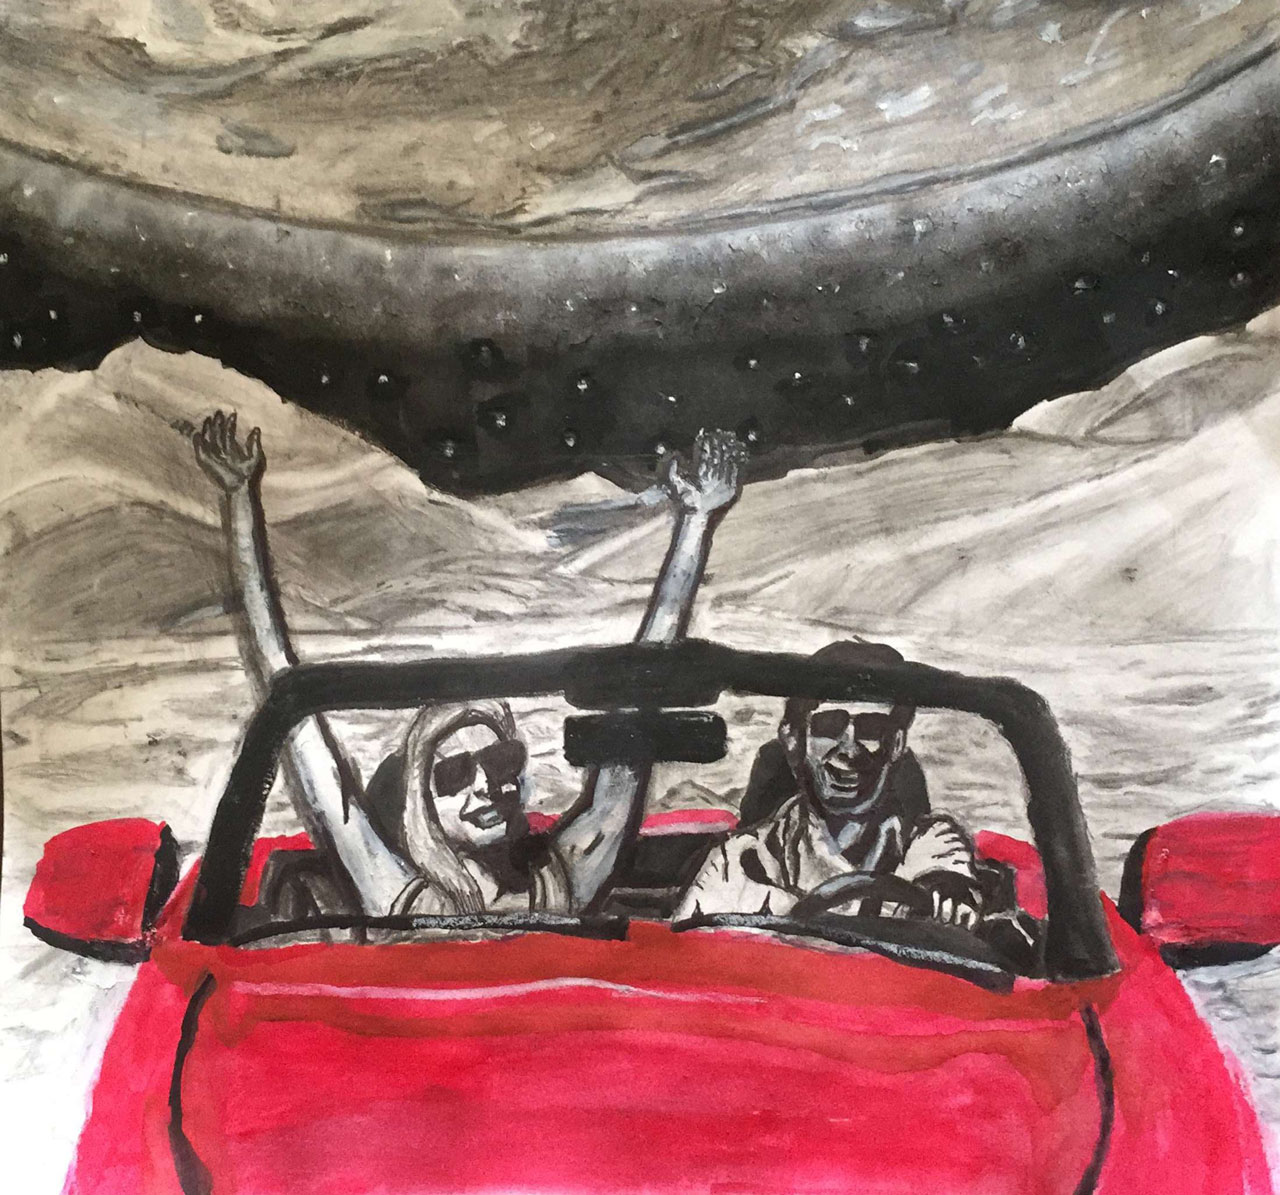 Driving on the Moon from Surrebral- Couple Driving on the moon in a red convertible.